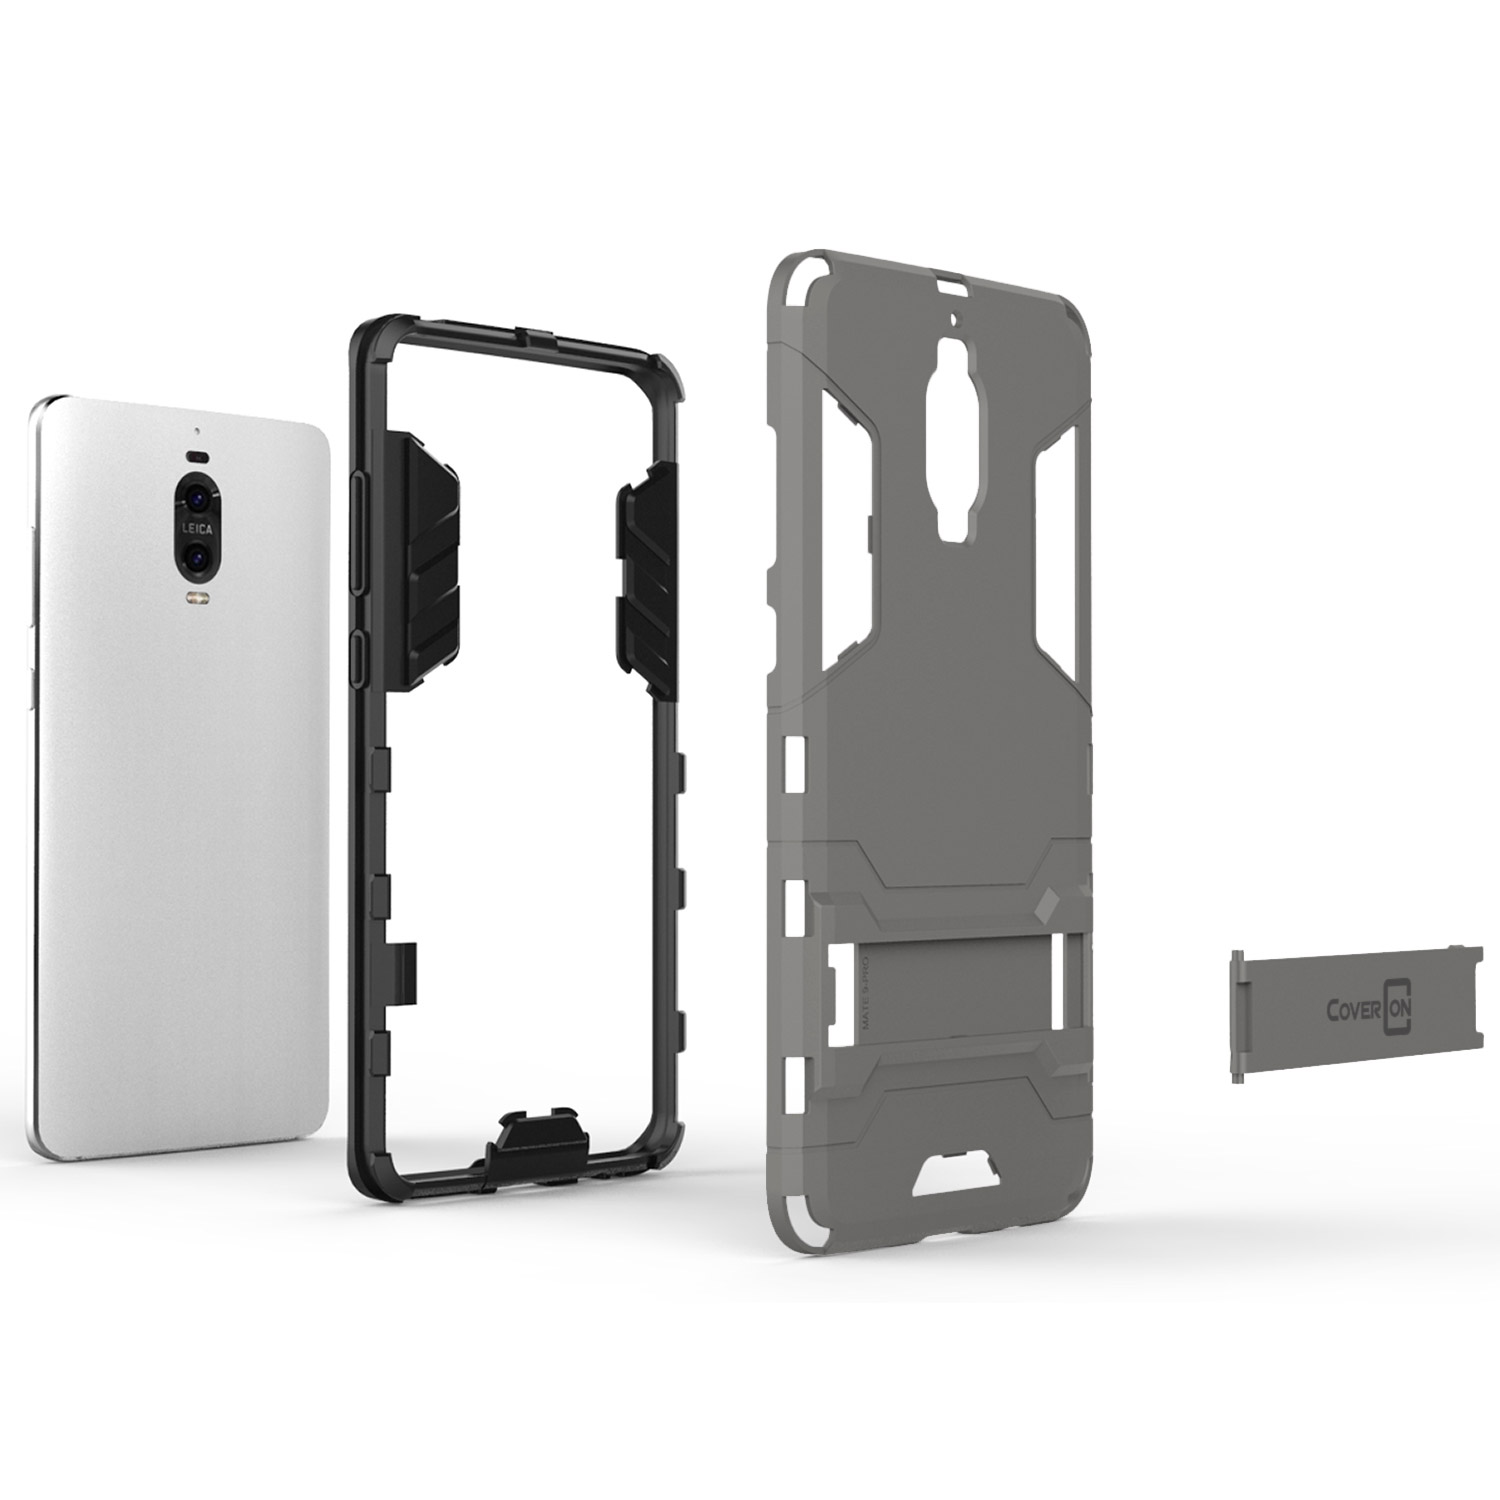 Hard Soft Heavy Duty Dual Layer Hybrid Armor Case For LG G3 (2014) Phone Cover